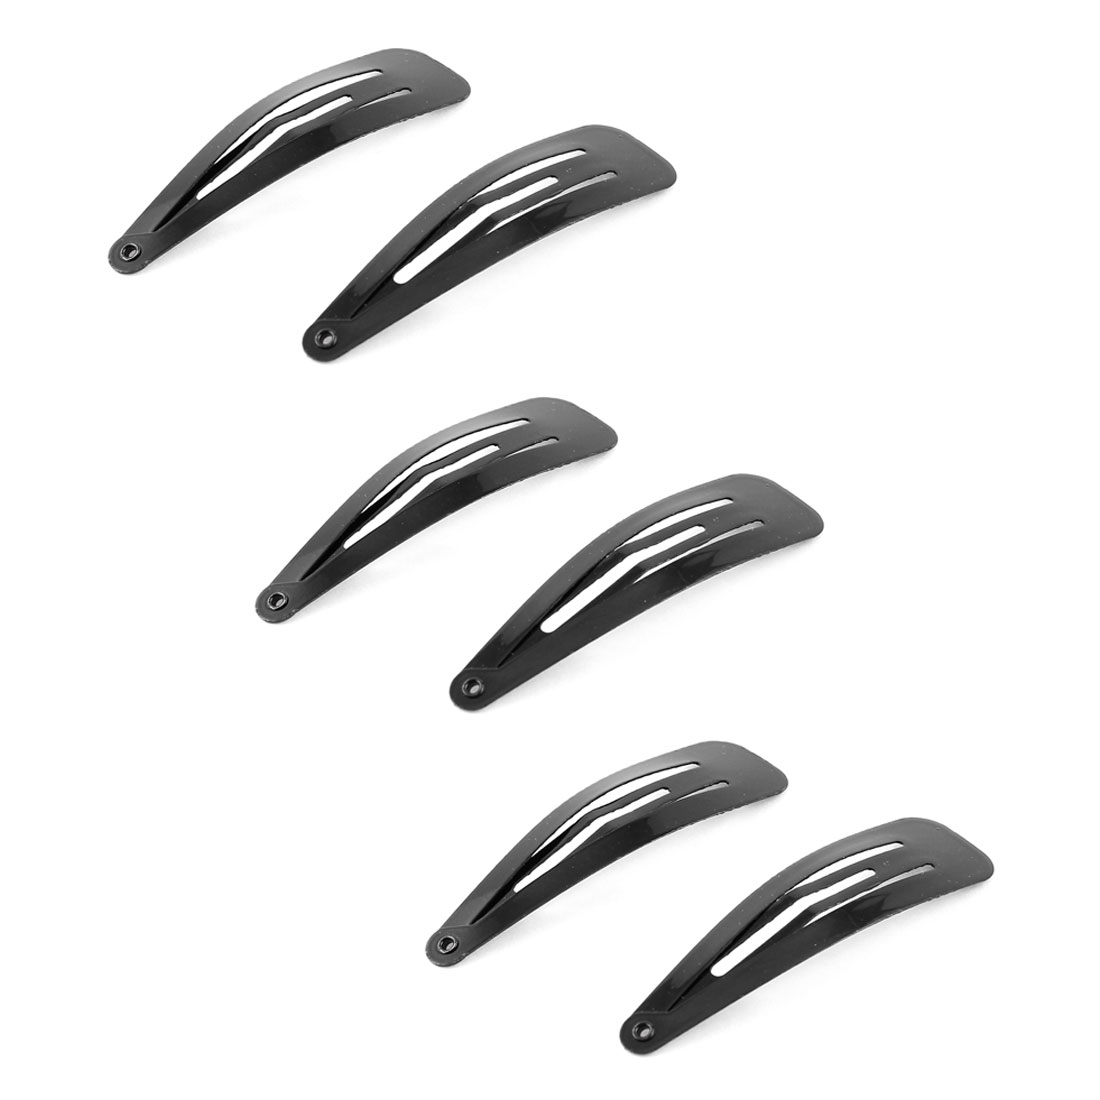 6 Pcs DIY Hairdressing Black Slides Grips Metal Bendy Snap Hair Clip